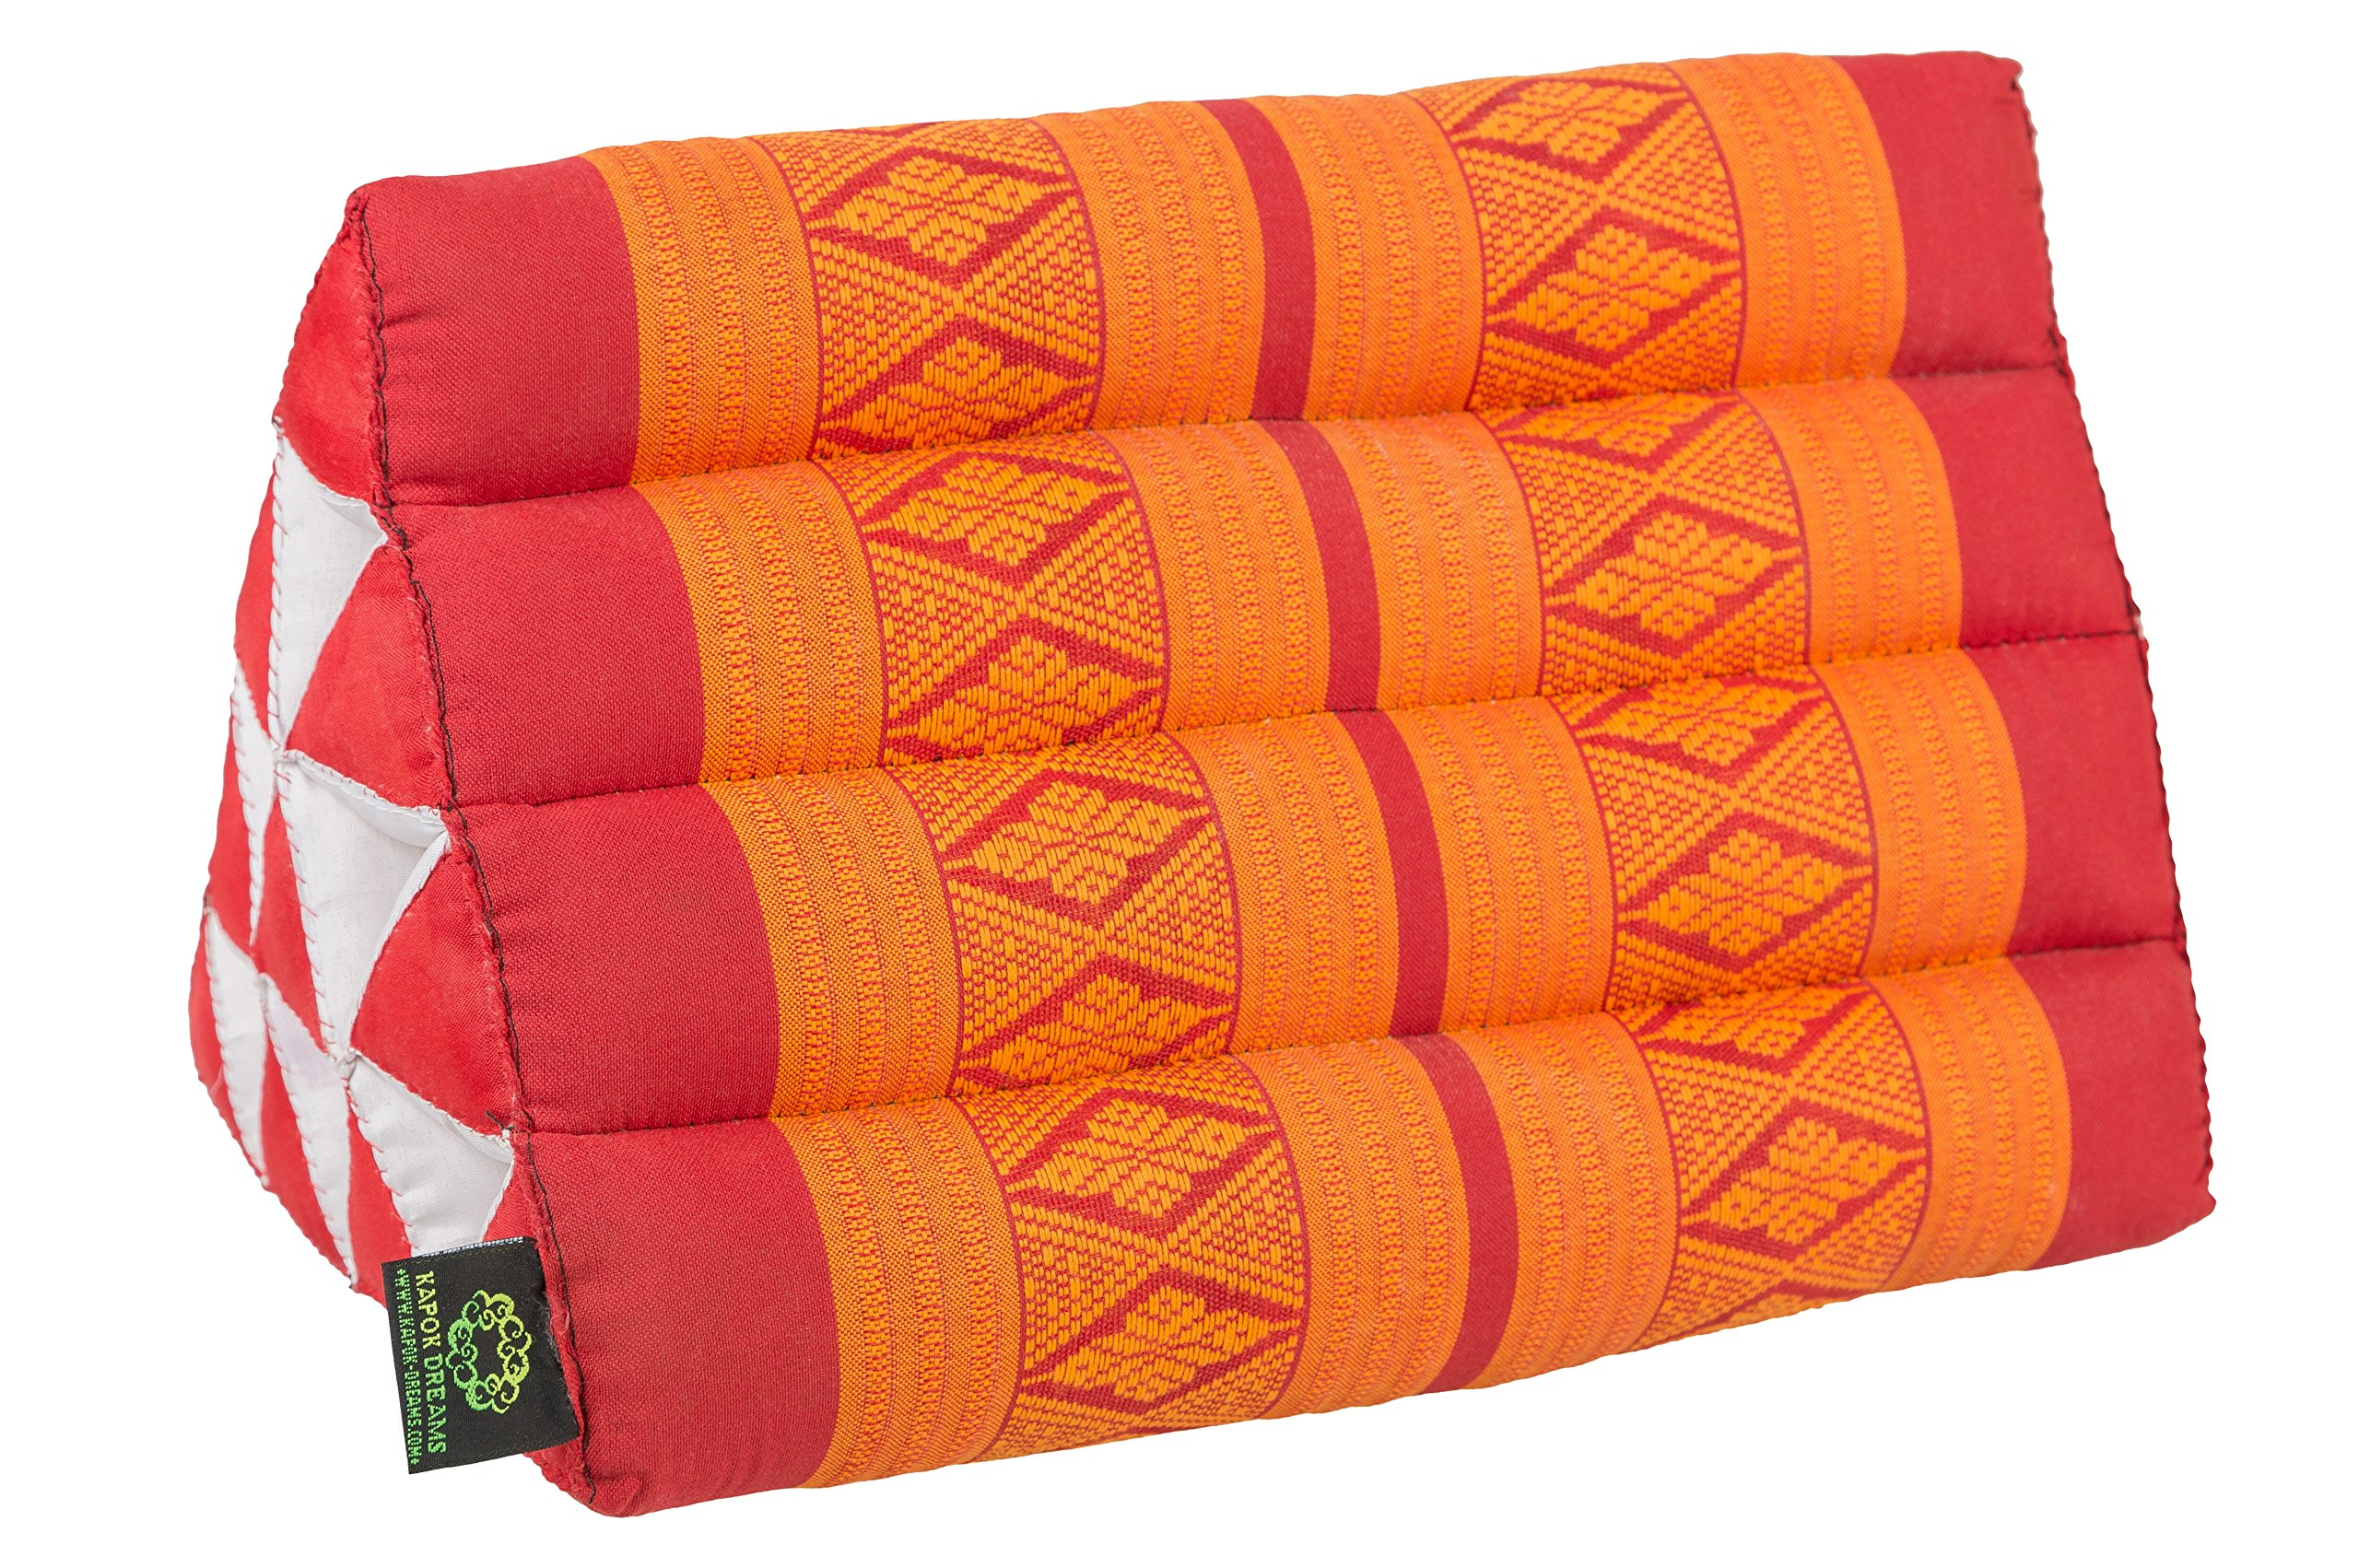 Kapok Dreams Triangle Pillow 13''x8'', Triangular Cushion (Medium Size), 100% Kapok-Stuffing Red & Orange. by Kapok Dreams